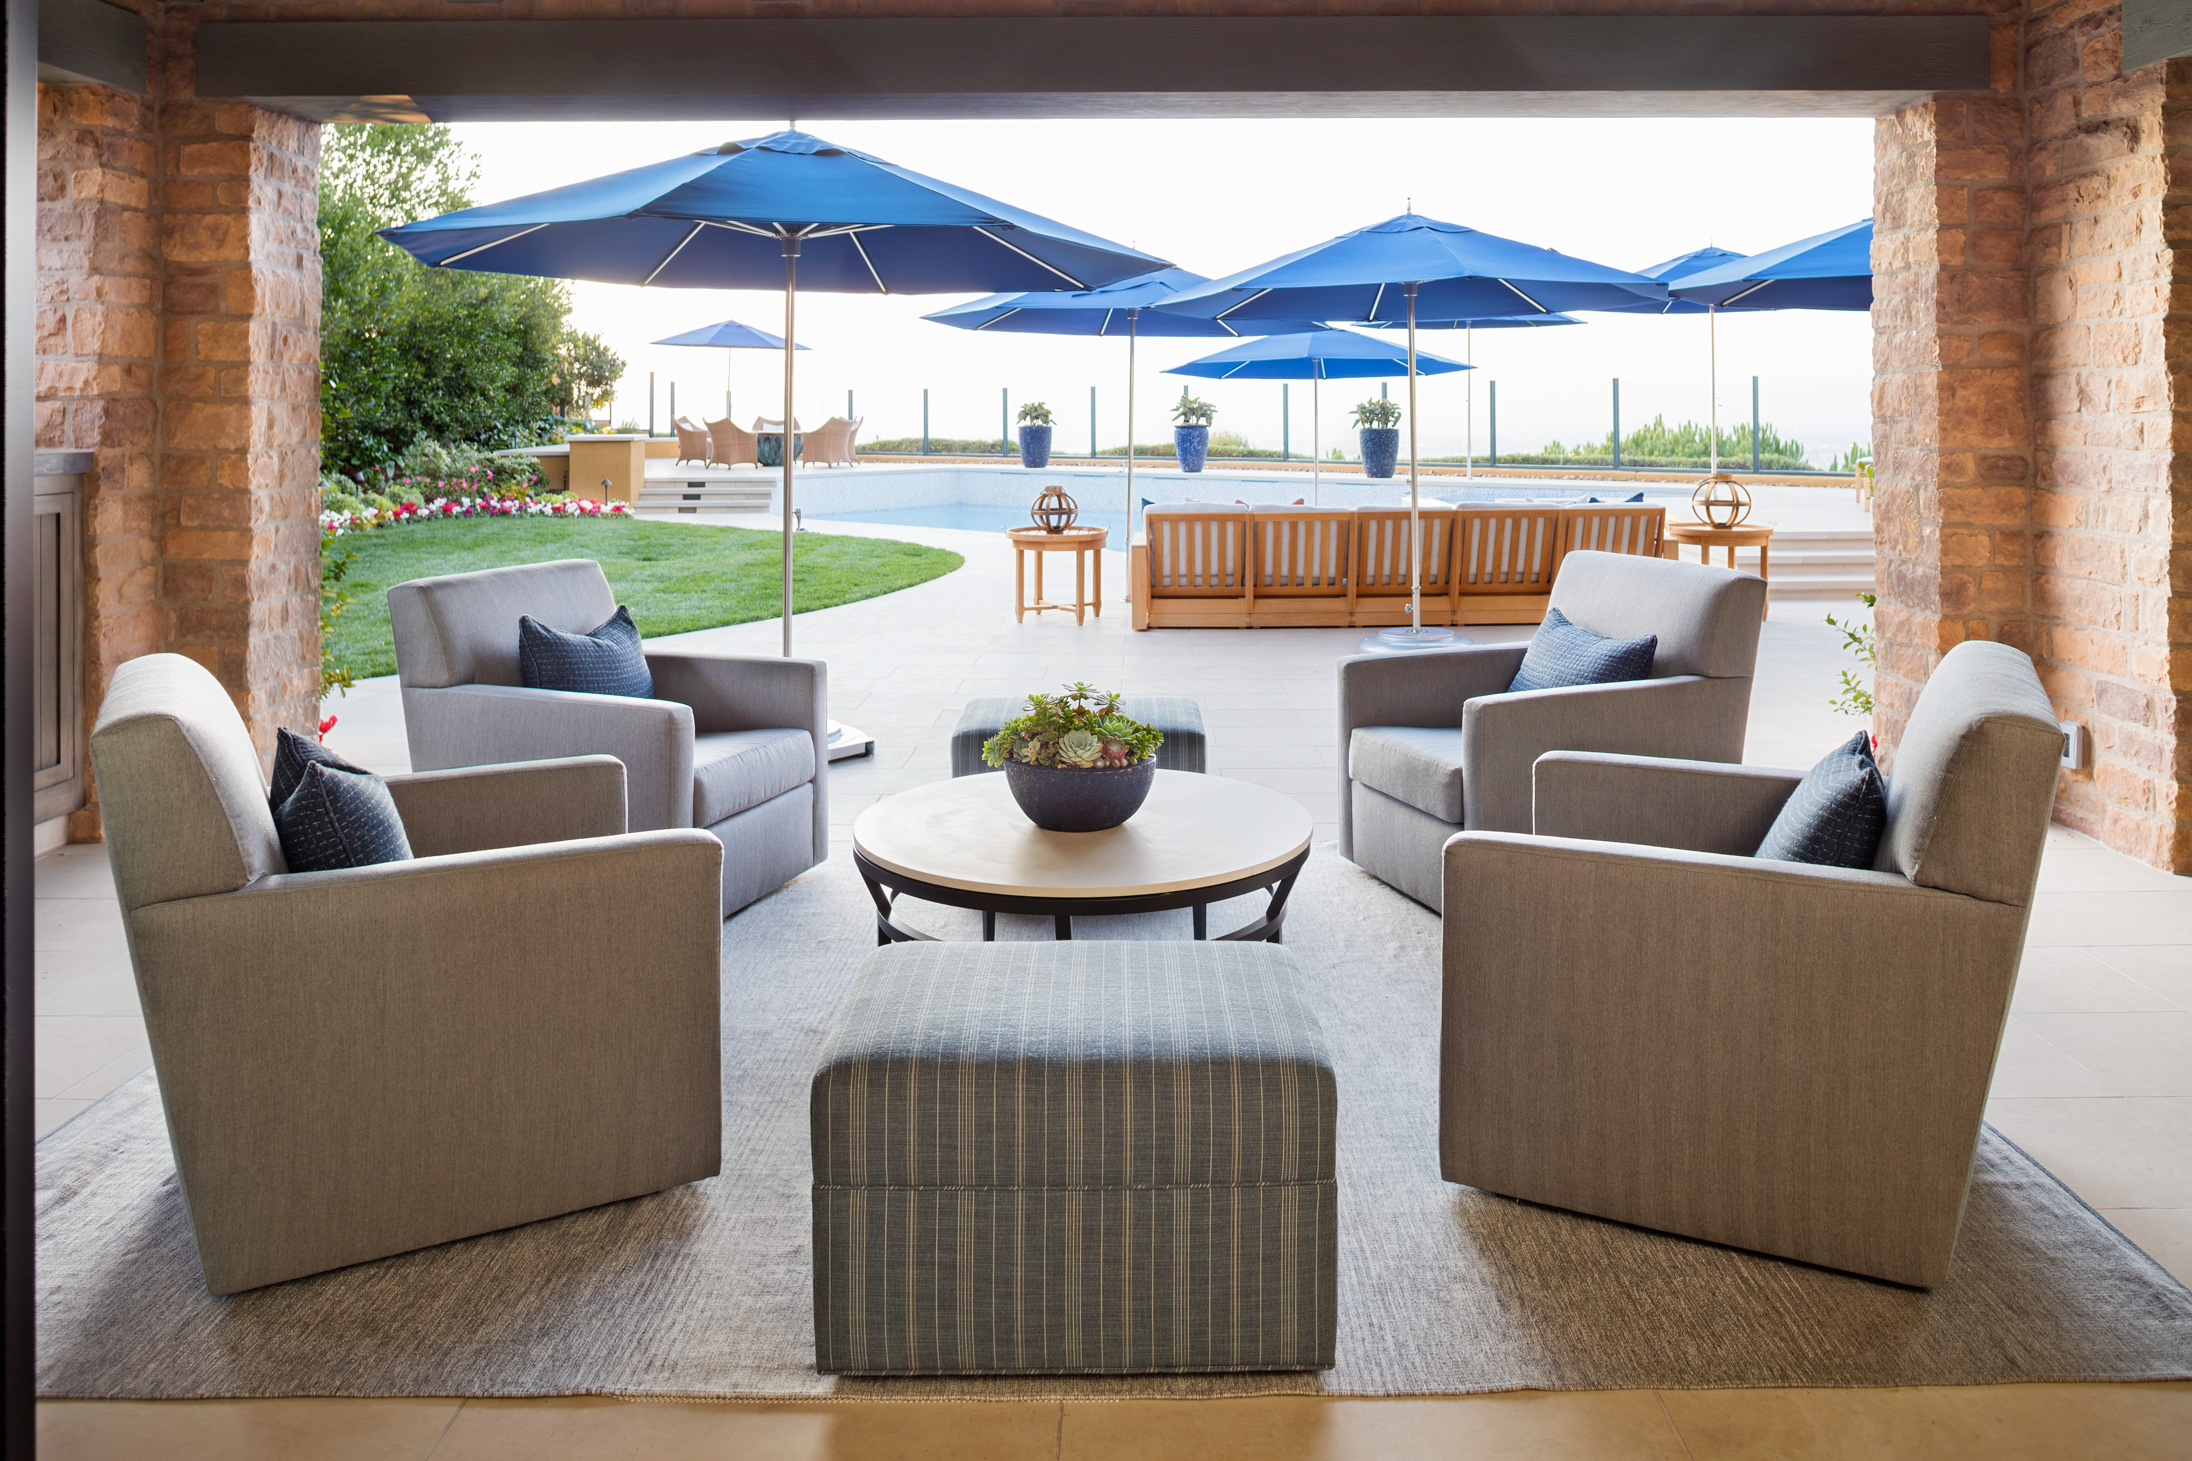 beachy home makeover loggia covered seating outdoor